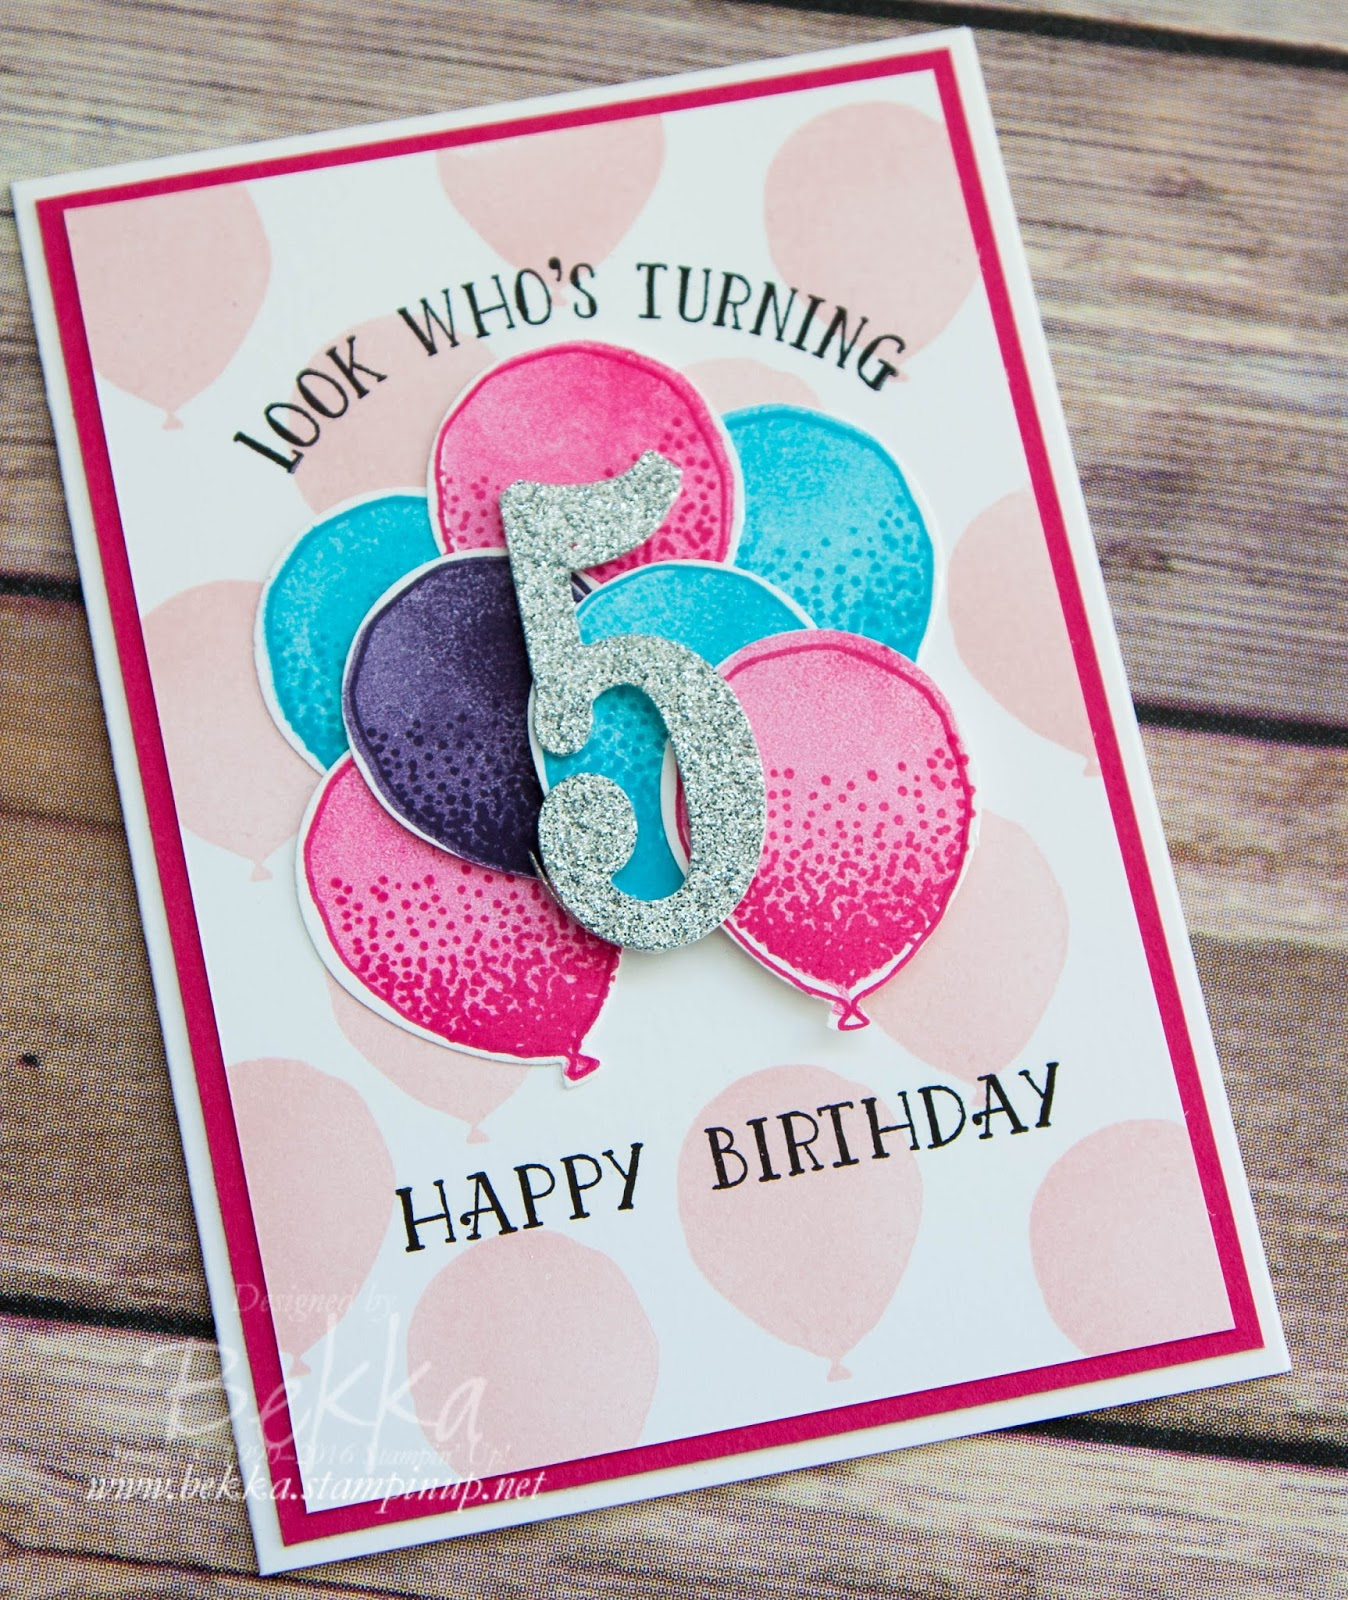 Birthday Ideas For Girl Turning 5 Image Inspiration of Cake and